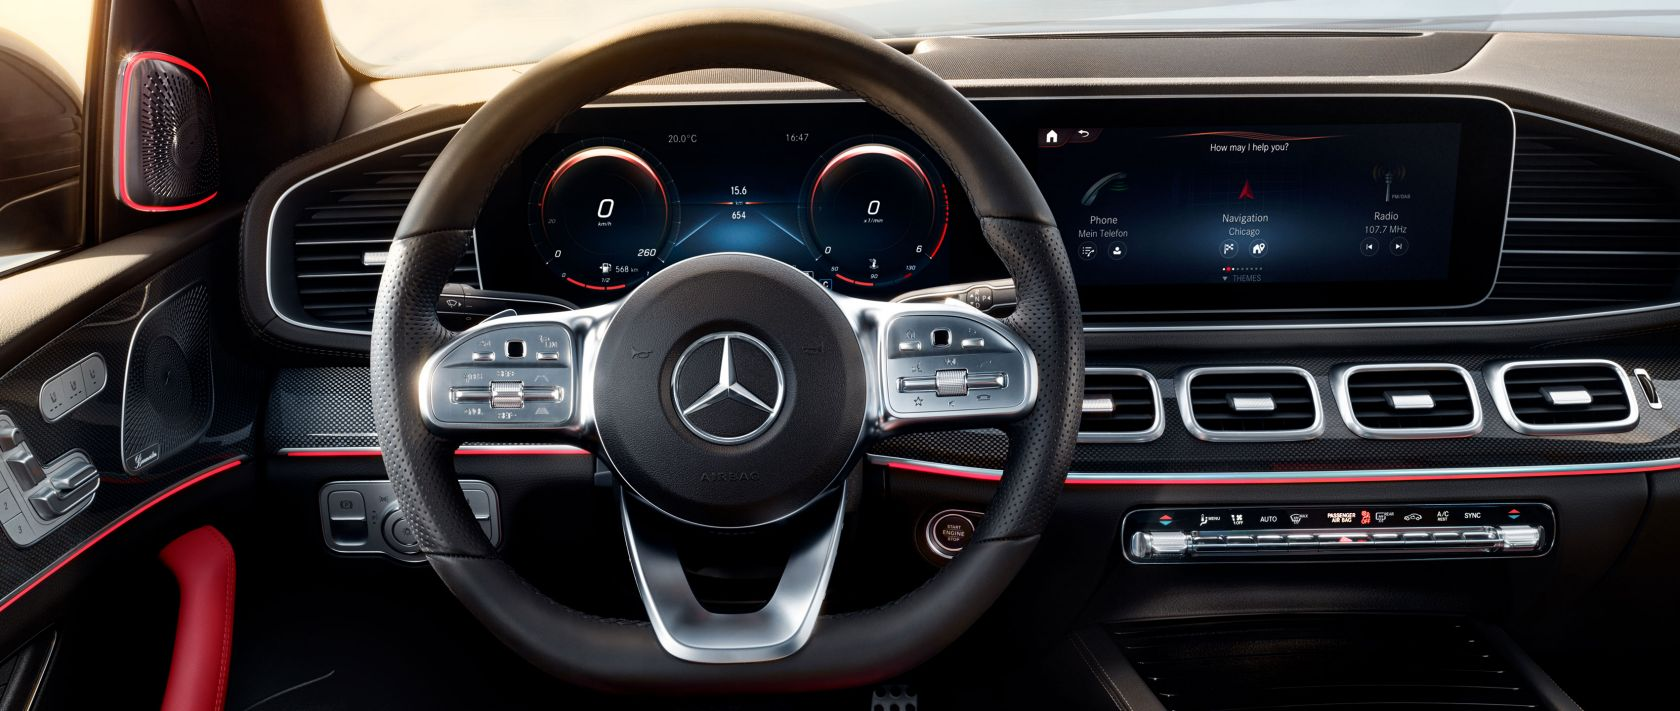 A close-up of the dashboard of the new Mercedes-Benz GLE Coupé (2020) with voice control LINGUATRONIC.